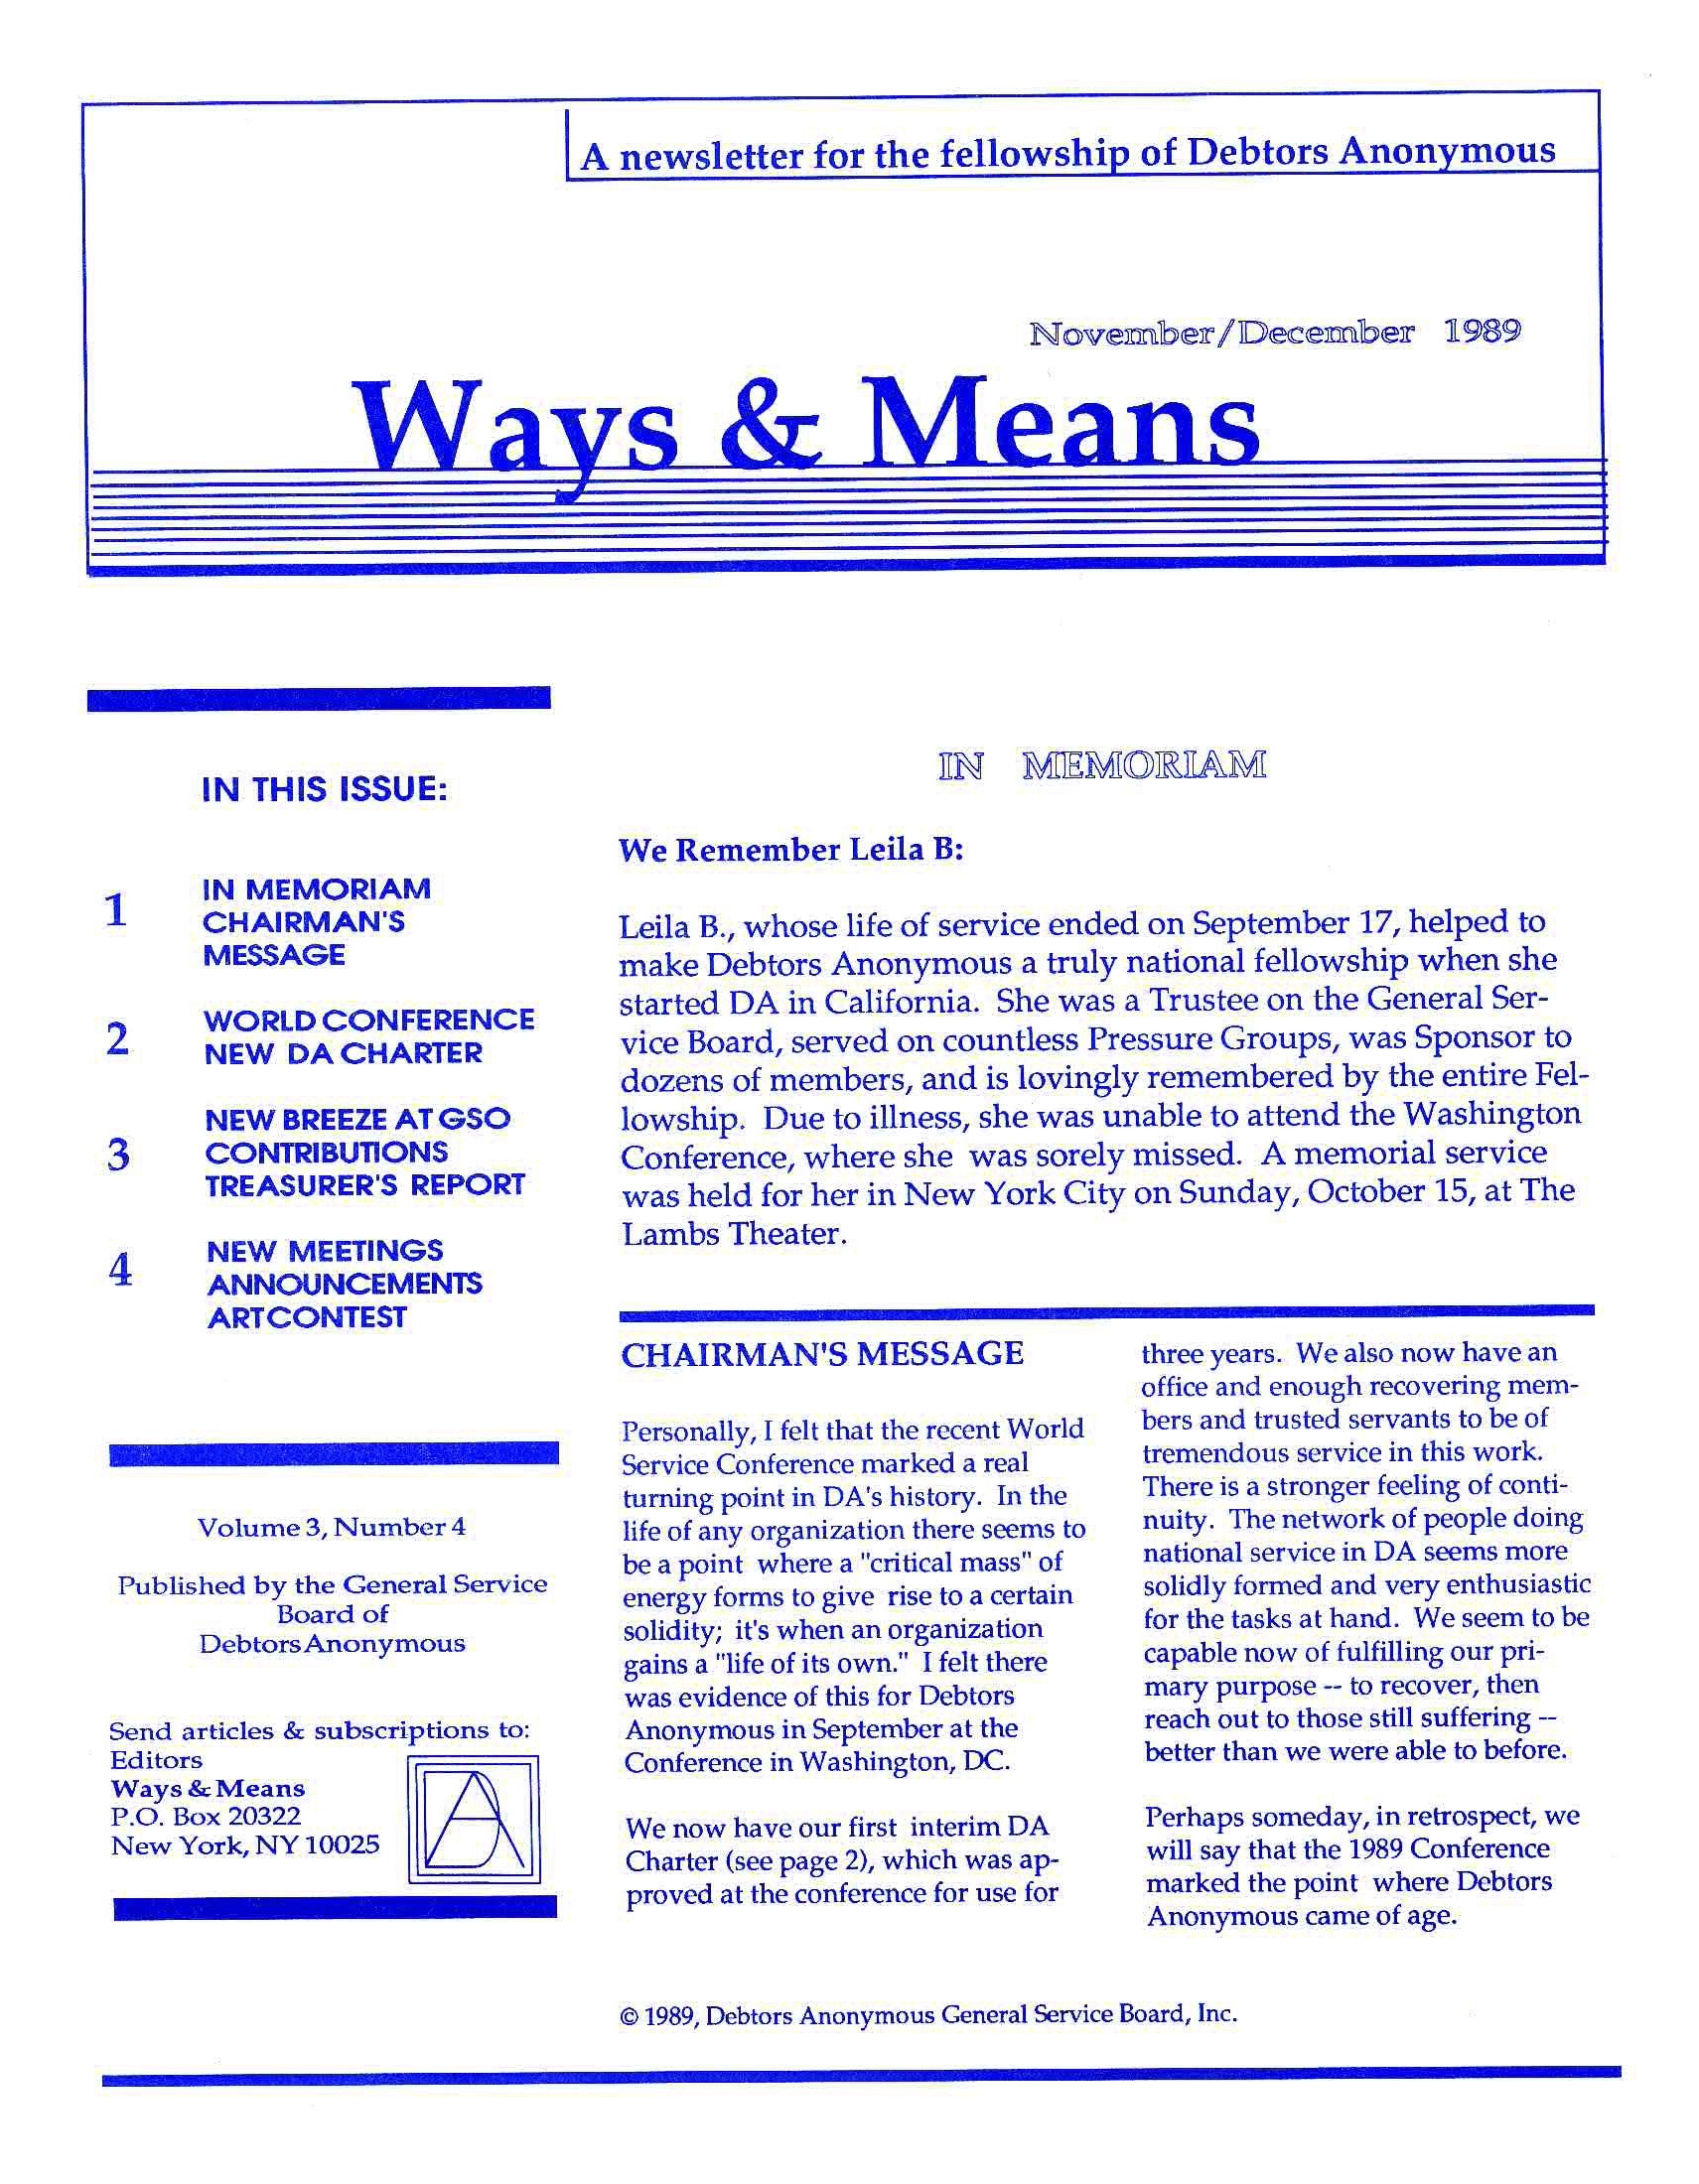 Ways & Means 4th QTR 1989